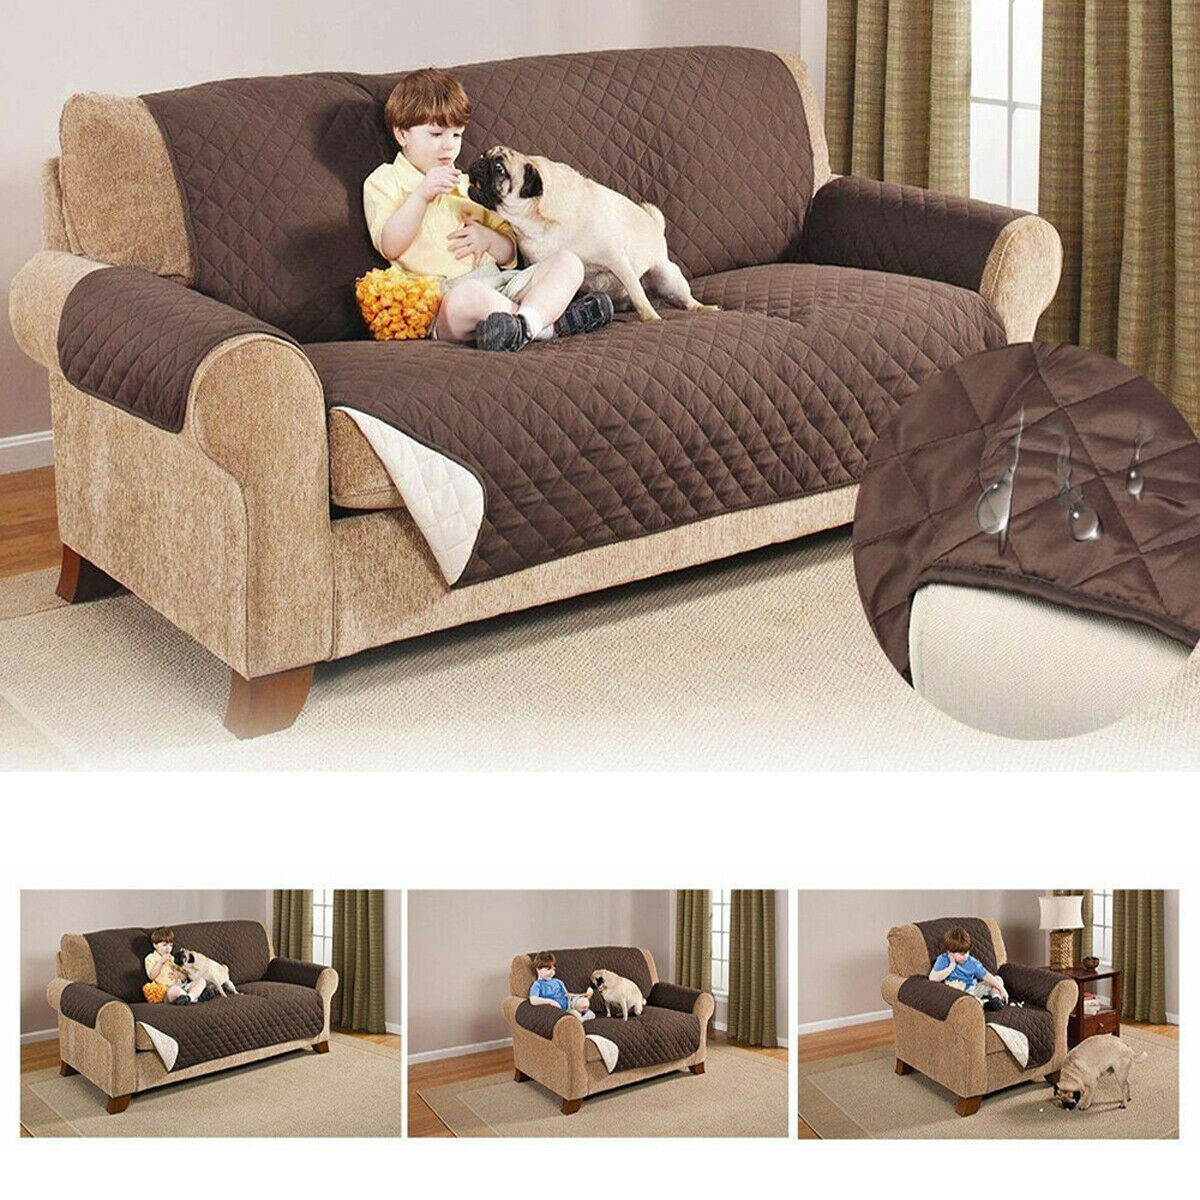 Waterproof Quilted Sofa Couch Cover Chair Pet Dog Kids Mat F